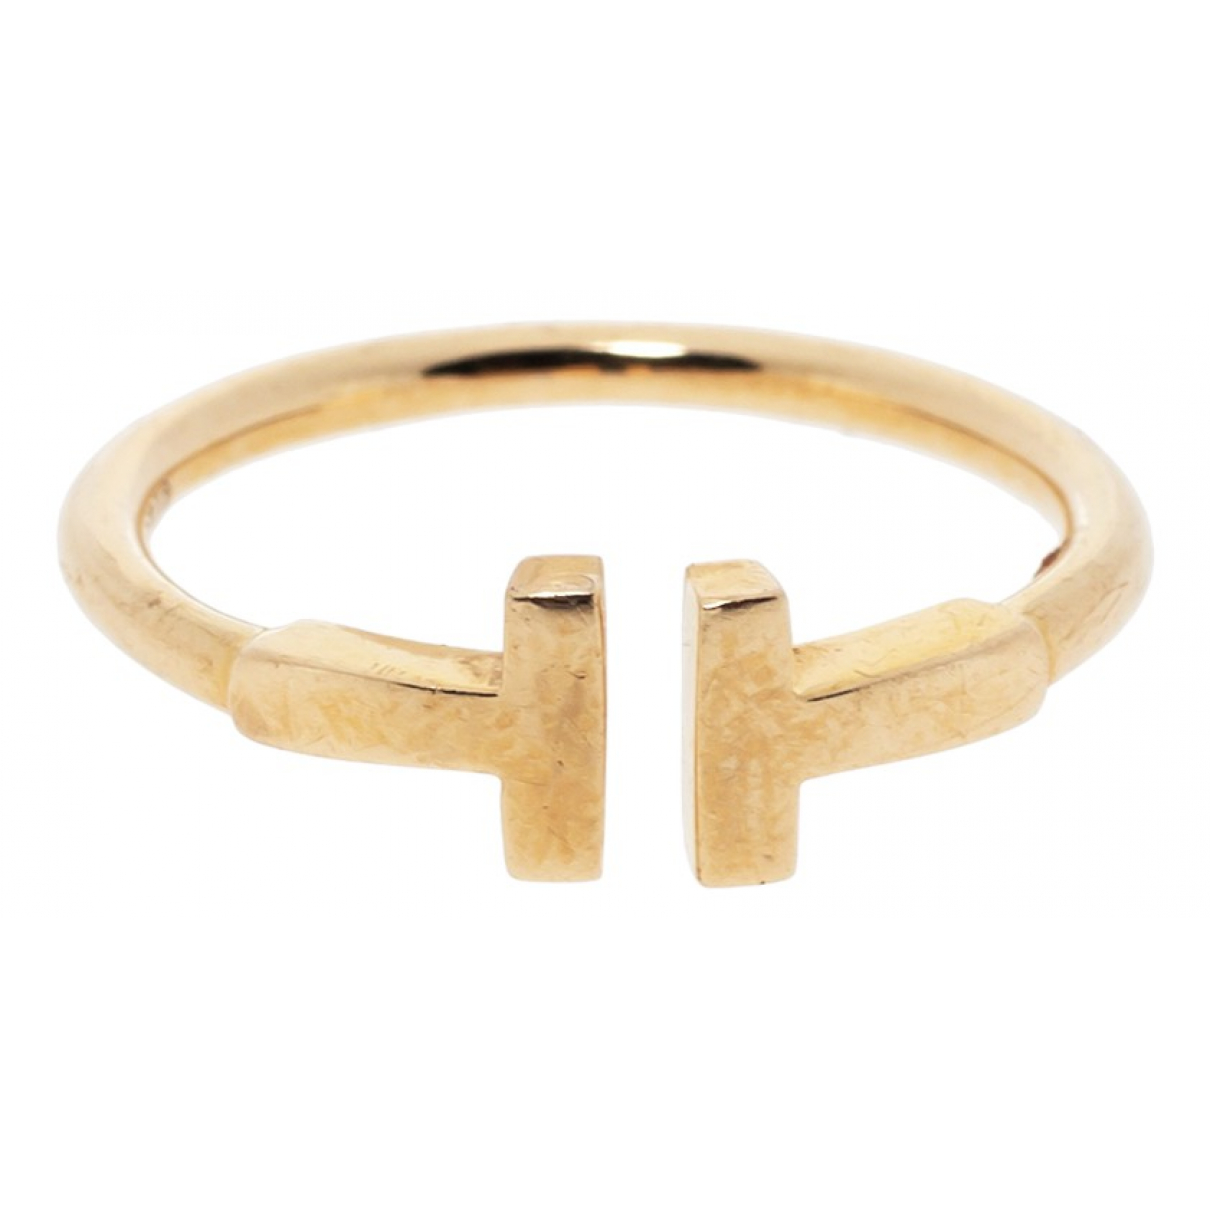 Tiffany & Co \N Yellow gold ring for Women 7 ¼ US